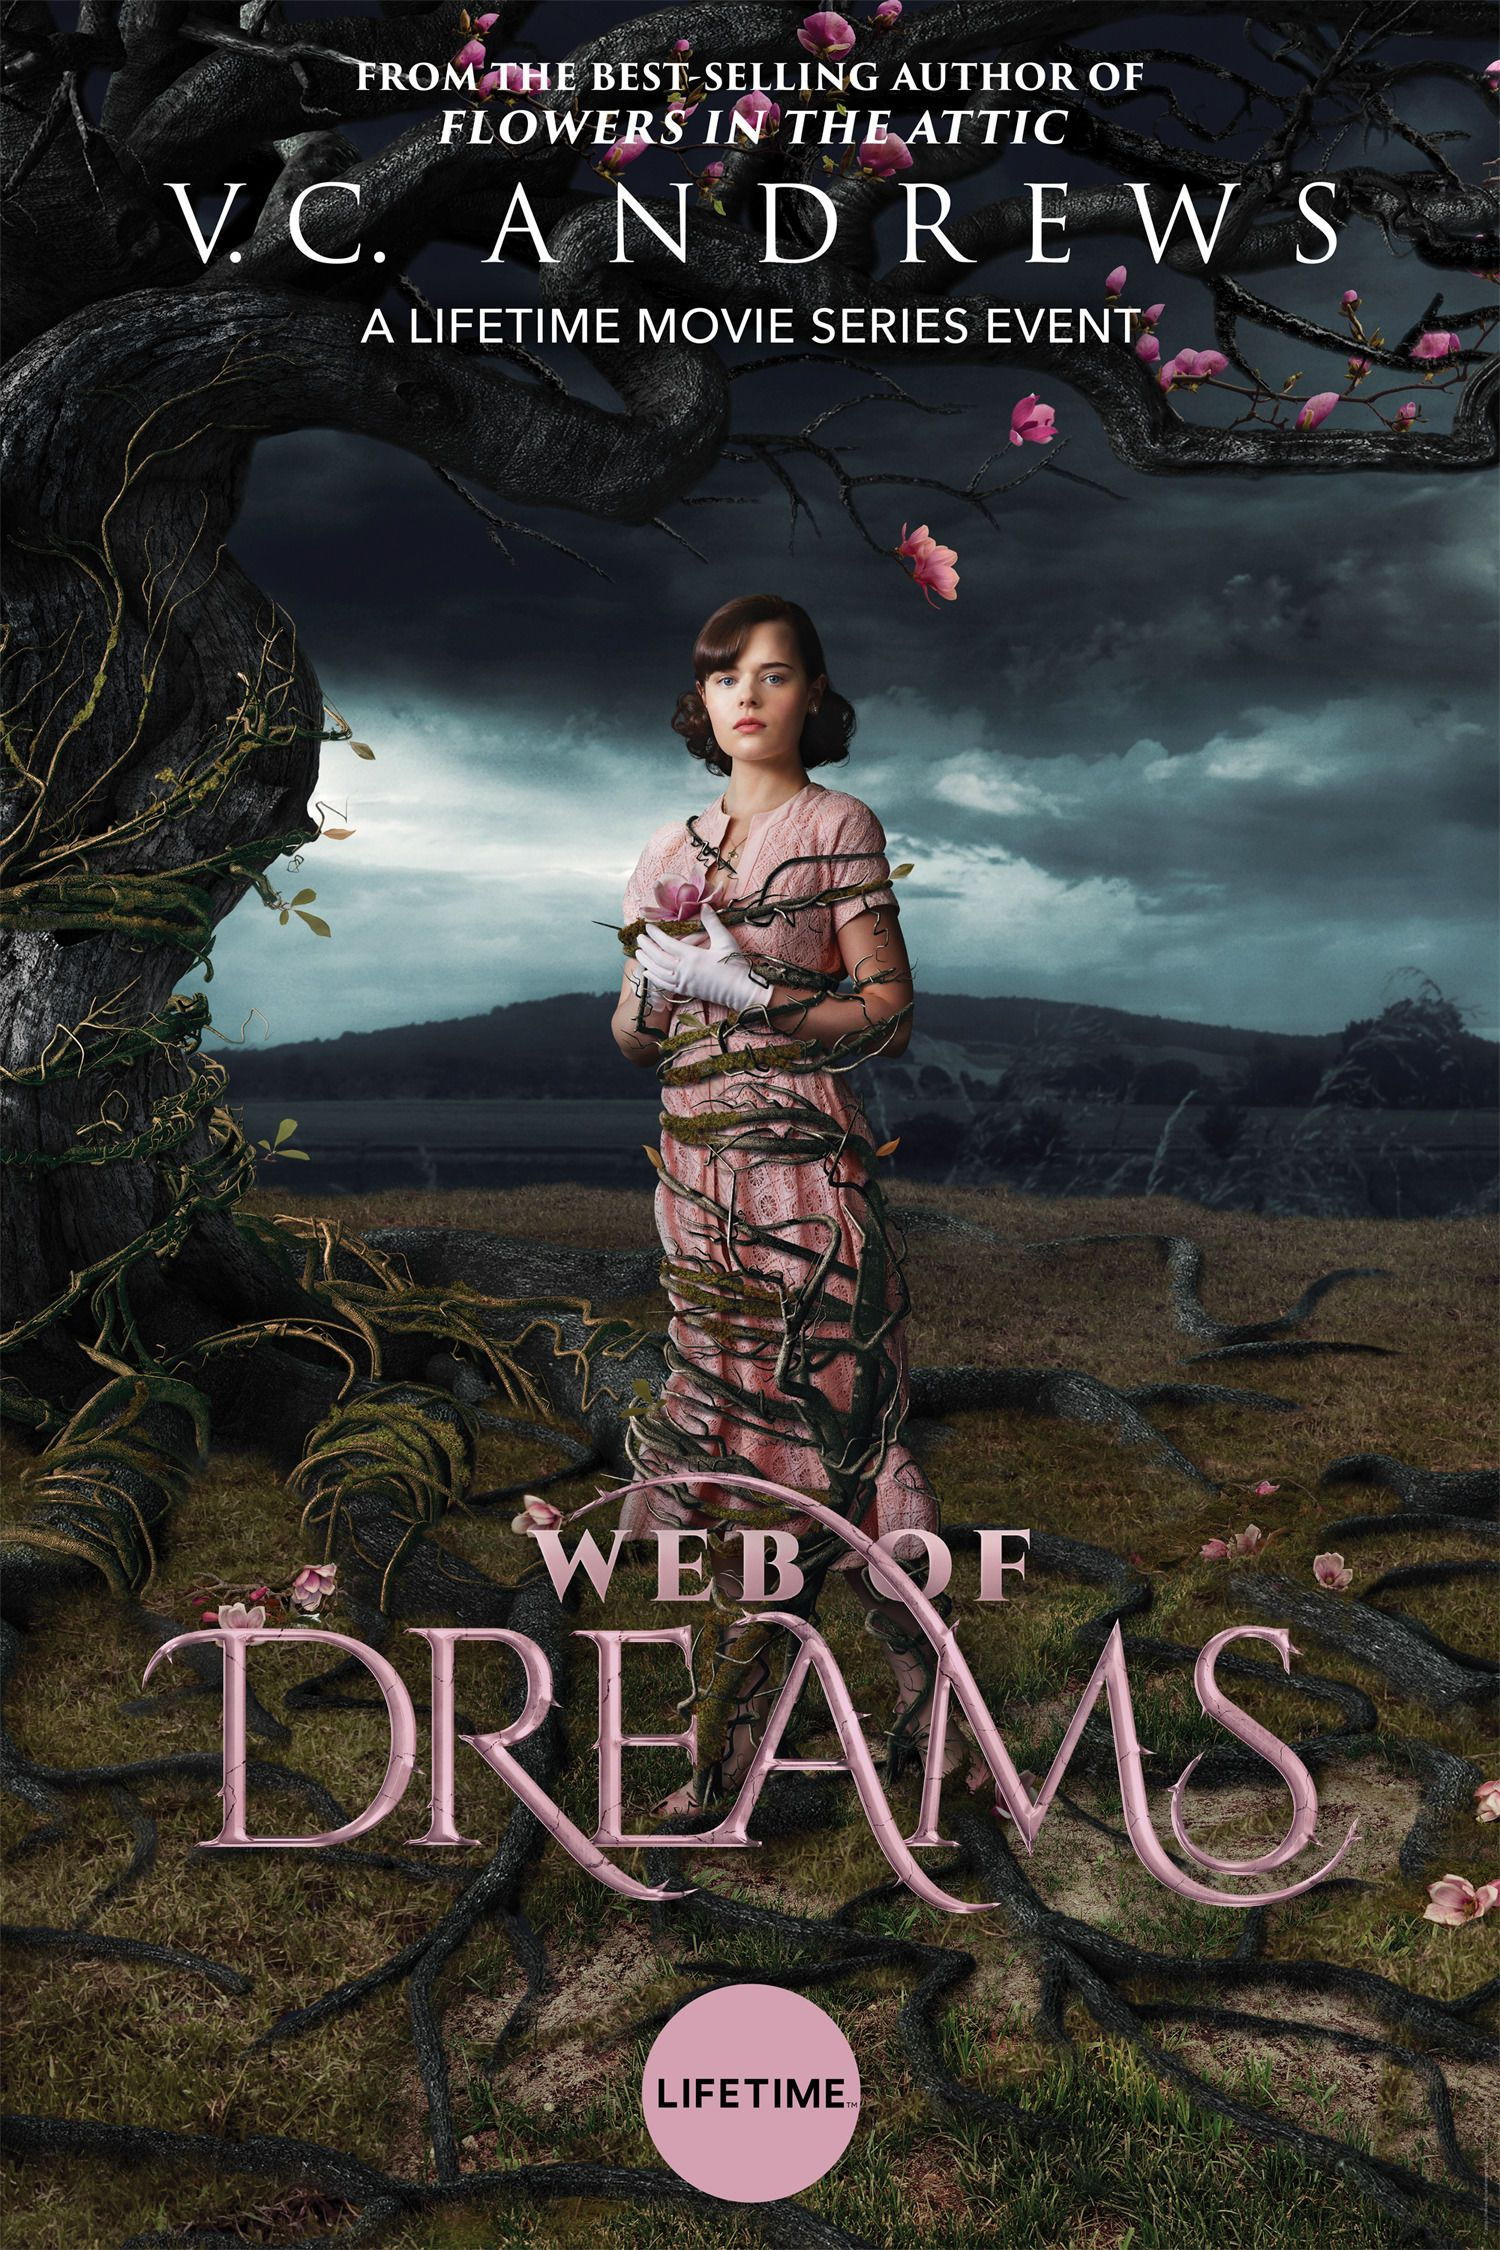 Web Of Dreams Finally Unlocks The Mysteries Of The Family Heaven S Mother Leigh Jennifer Laporte Had T Free Movies Online Lifetime Movies Tv Series Online